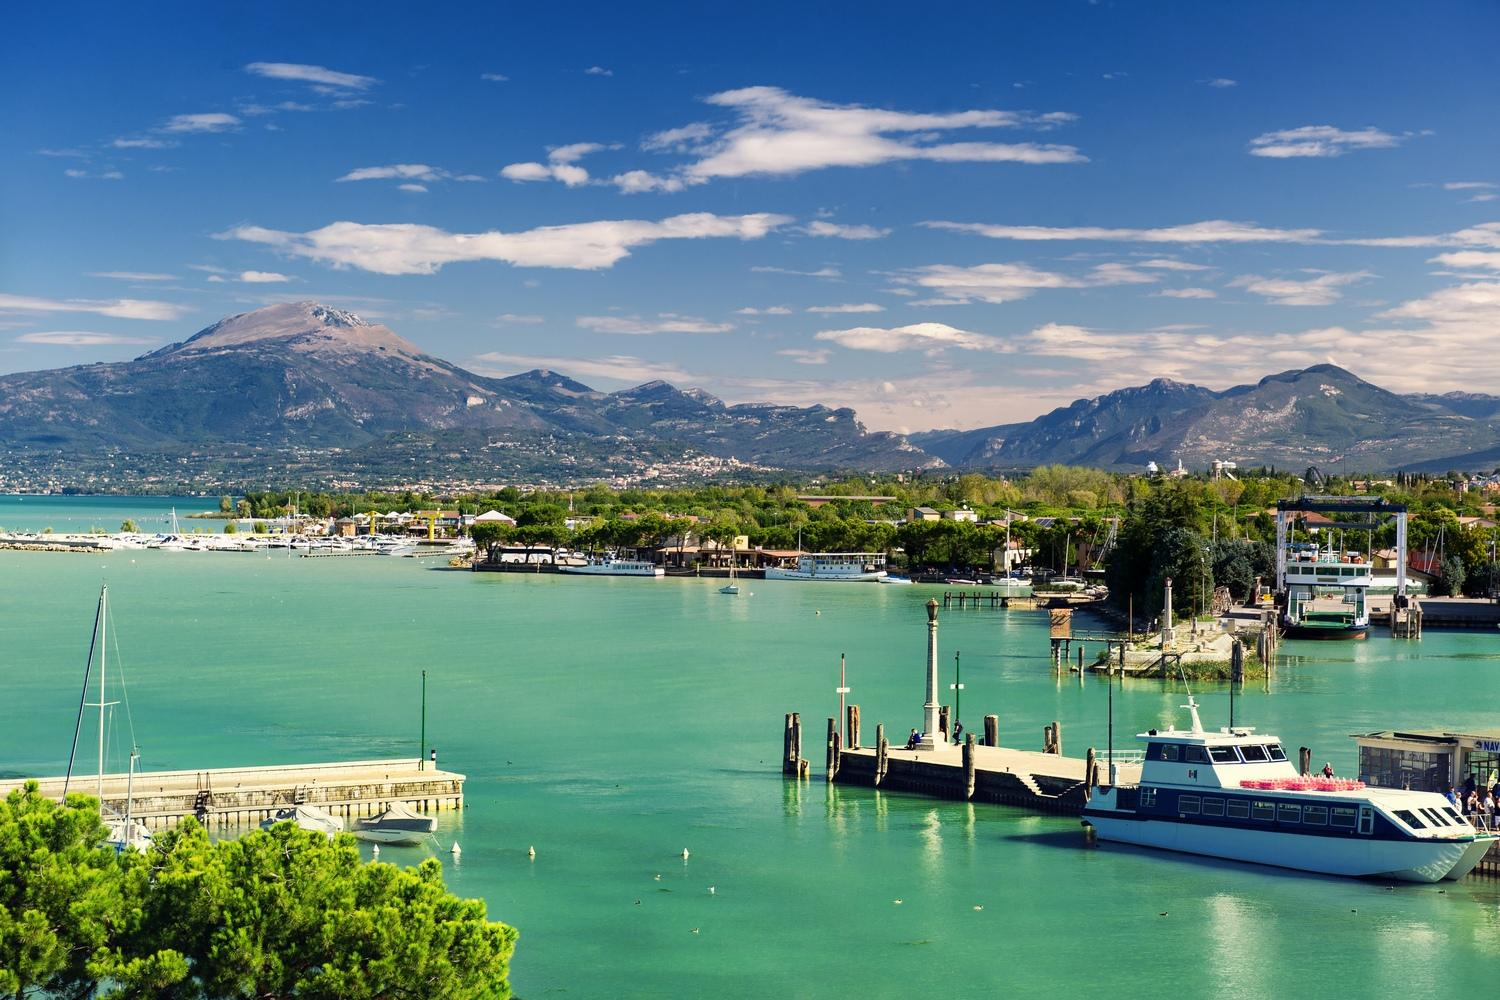 Views of Lake Garda from Peschiera del Garda